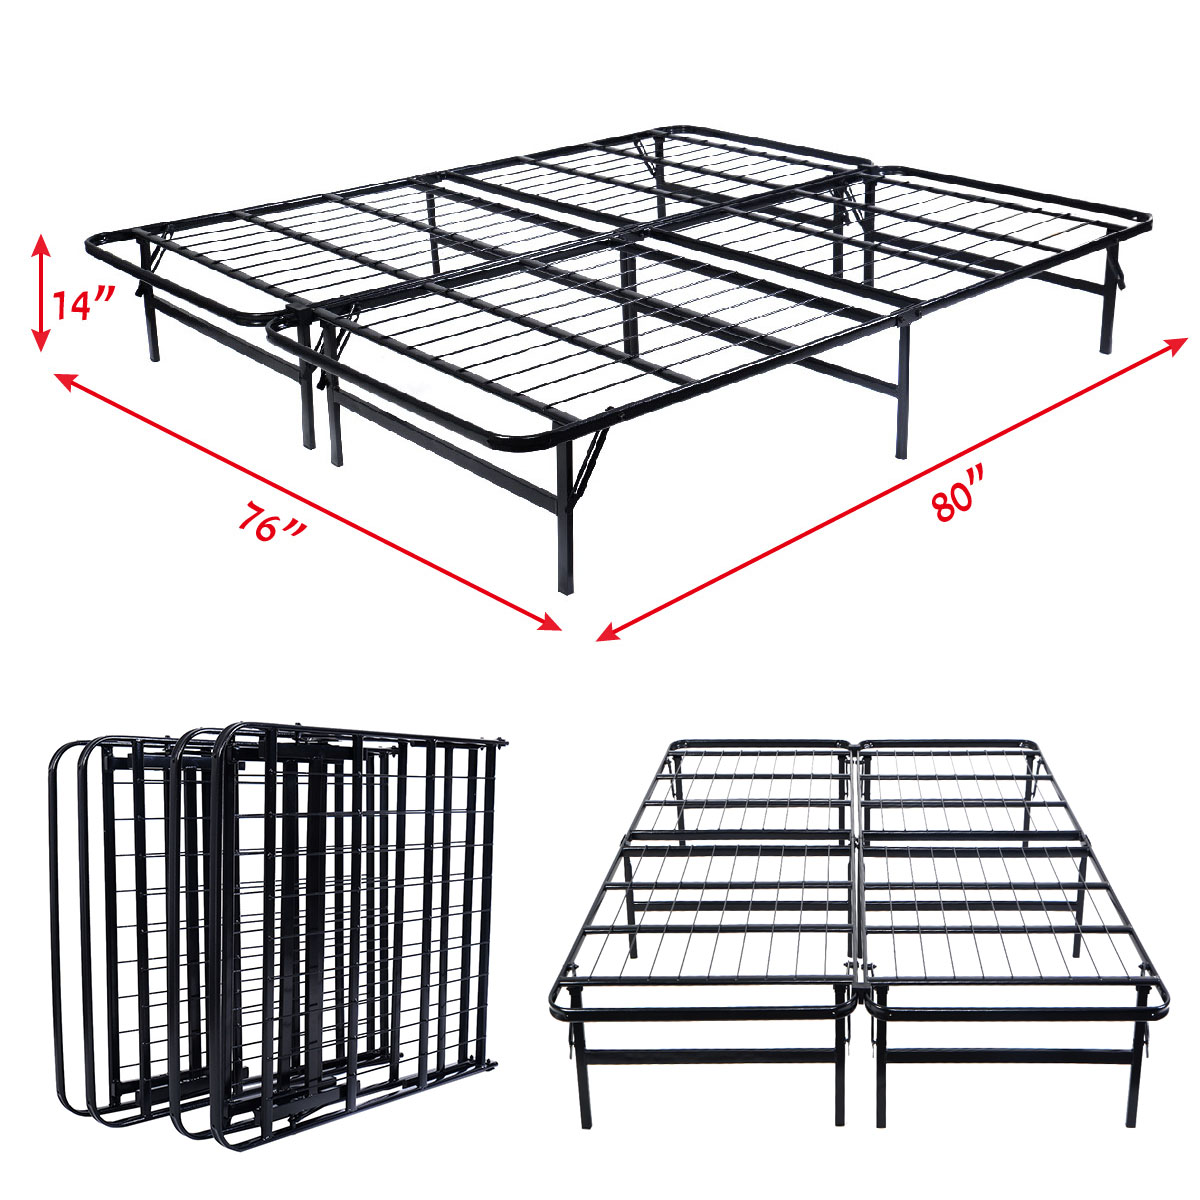 Epic Costway Platform Metal Bed Frame Mattress Foundation Size Box Springs Queen Size